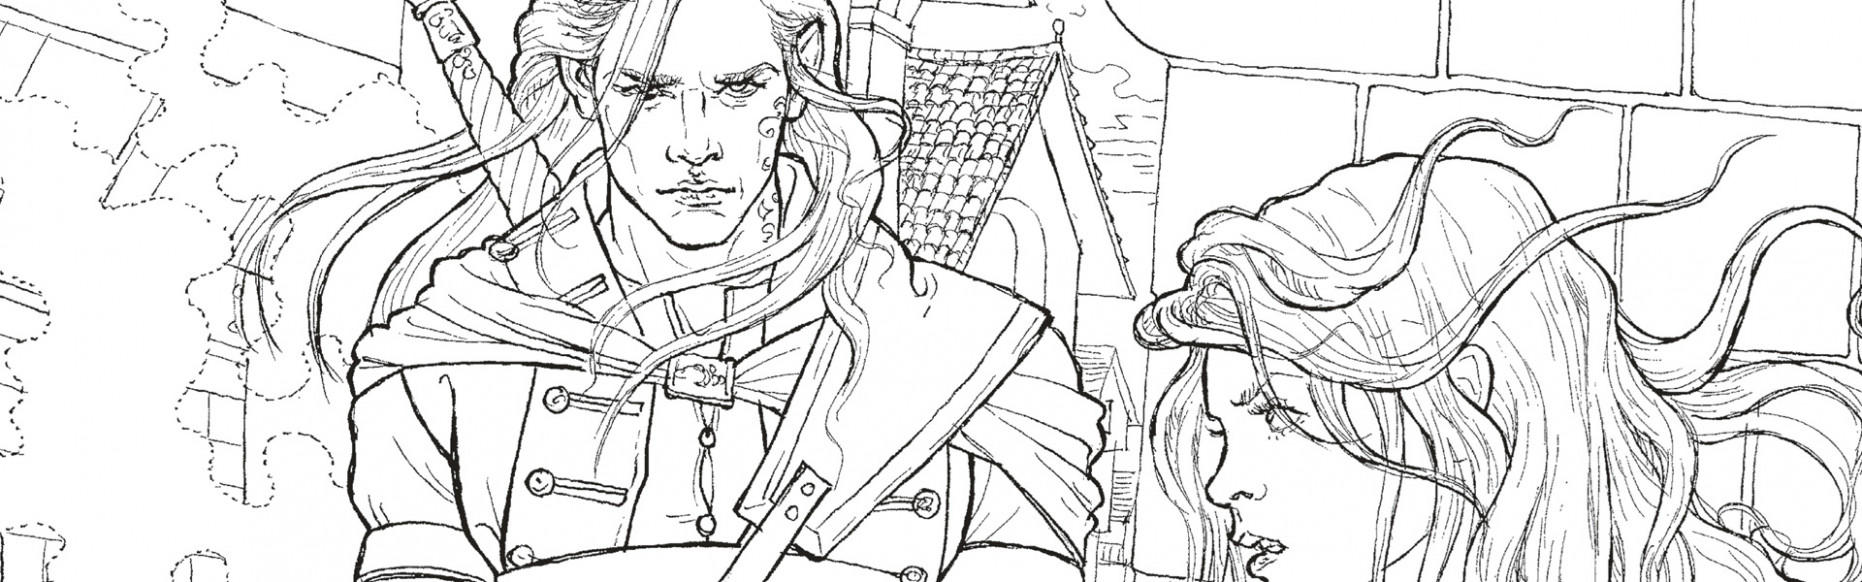 The Throne of Glass Colouring Book Free Pattern Download - WHSmith Blog